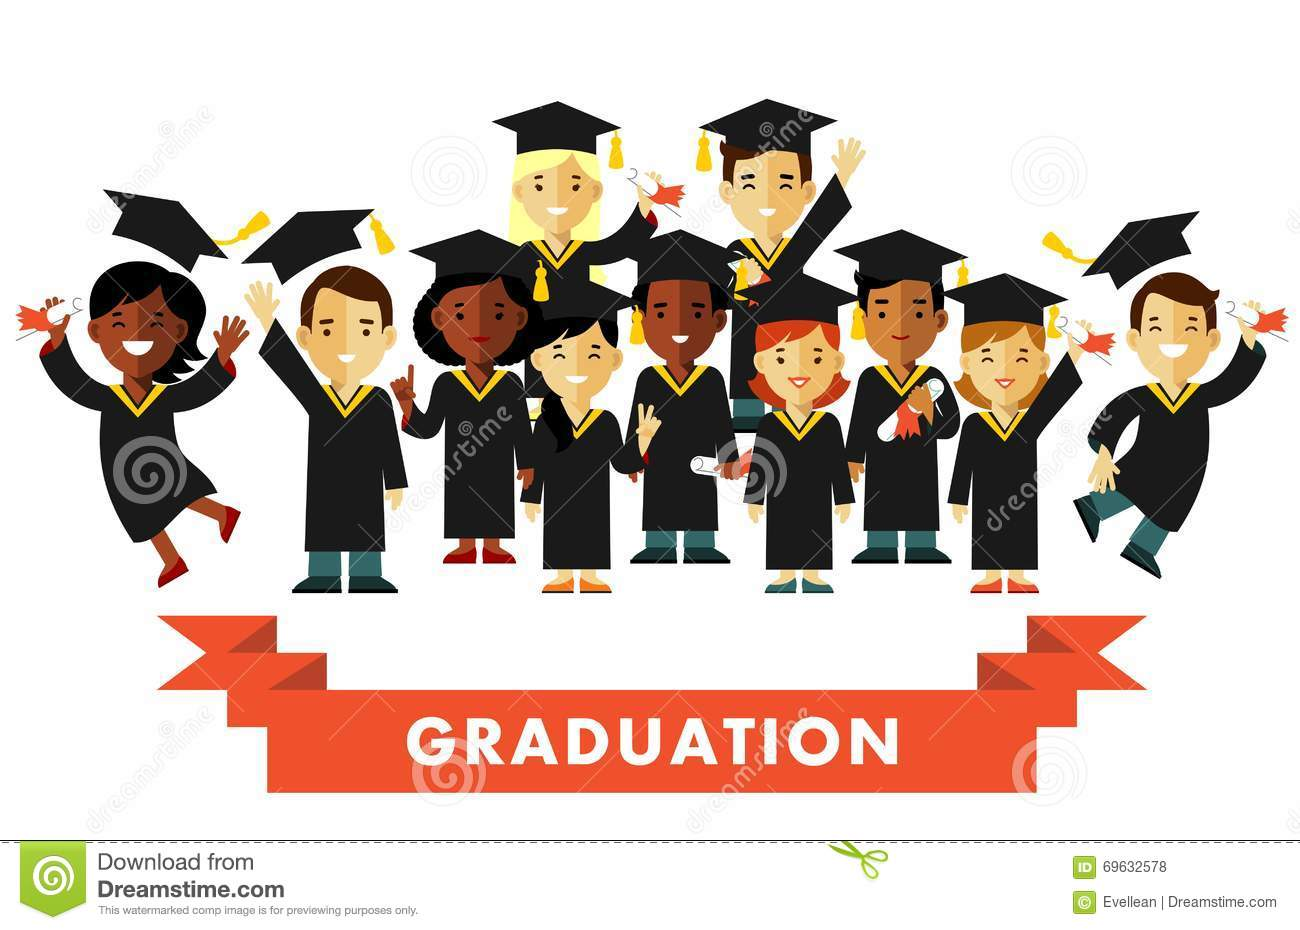 the educational purpose of the graduation for the students